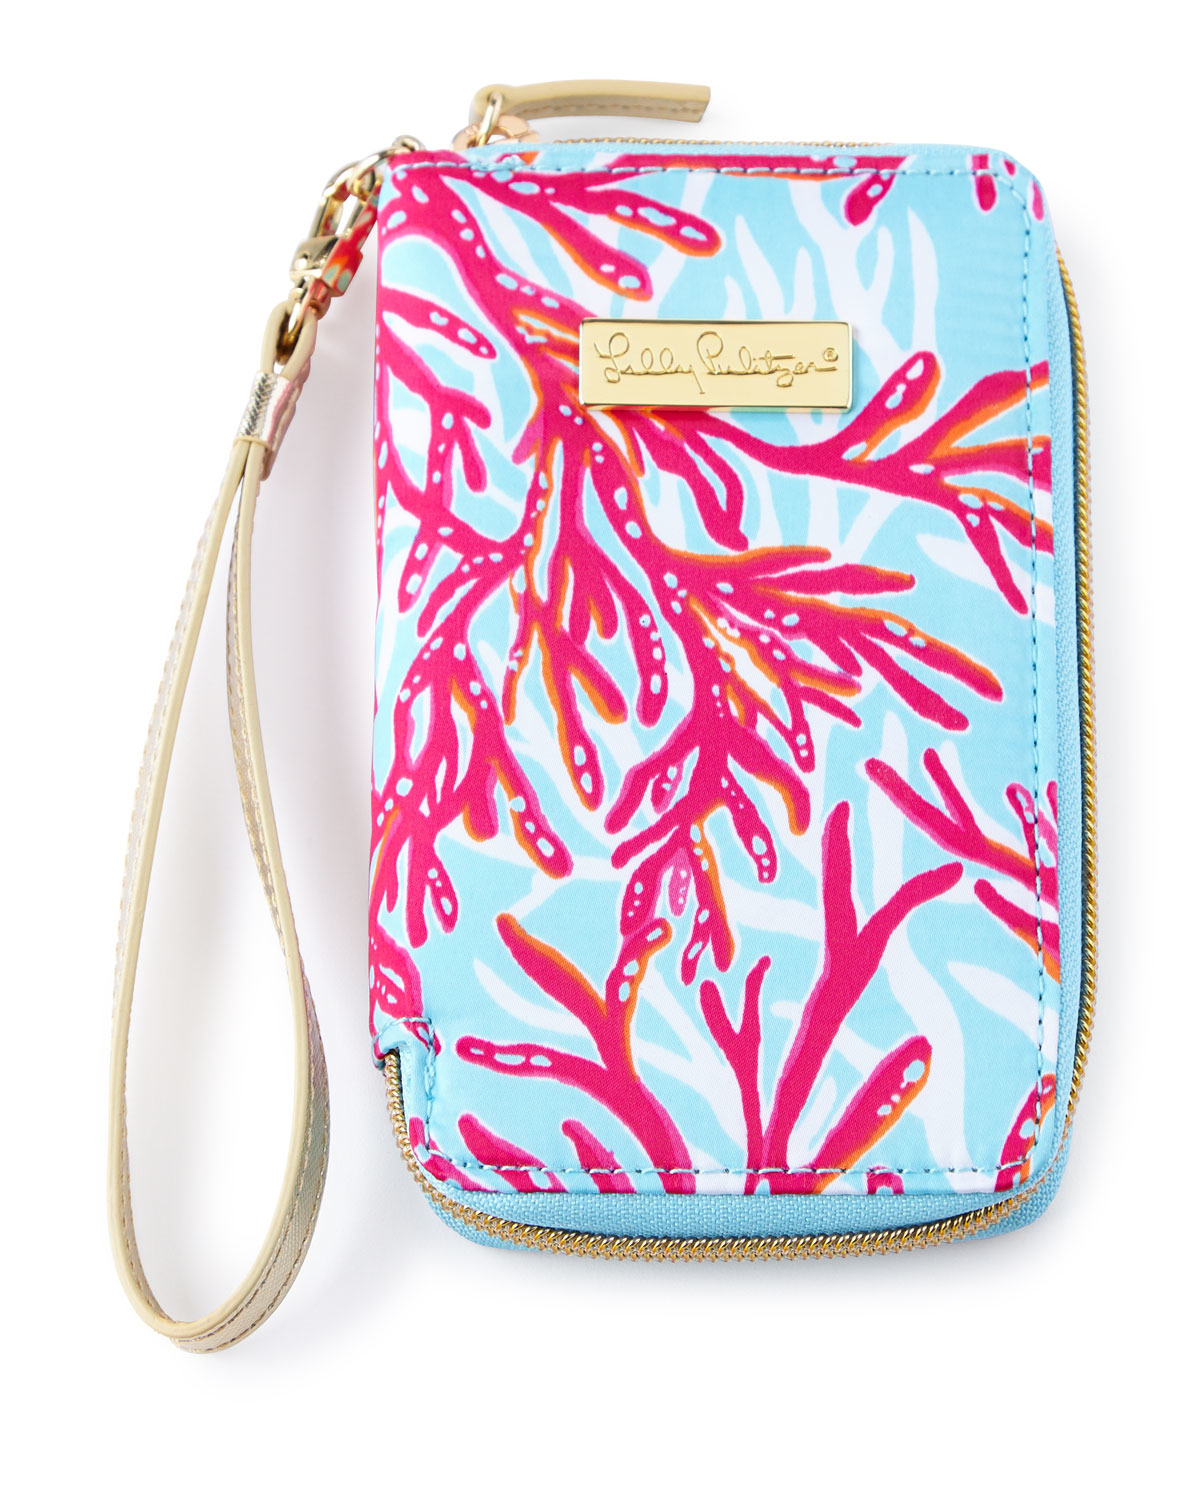 Lilly Pulitzer Phone Case | Lilly Pulitzer Iphone 5s Cases | Kate Spade Tech Cases